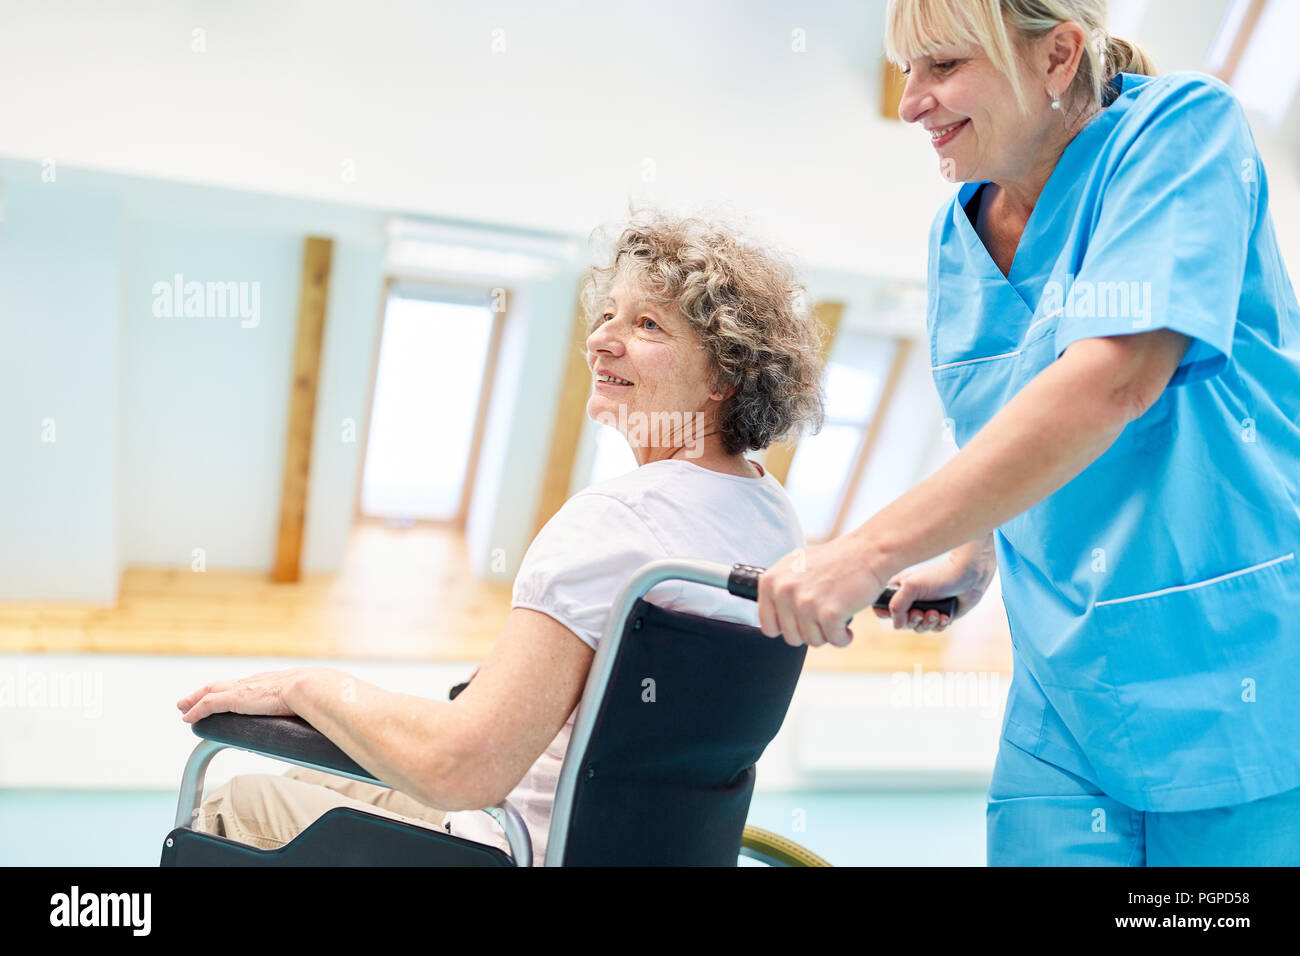 Caregiver cares for a senior woman in a wheelchair in physiotherapy - Stock Image